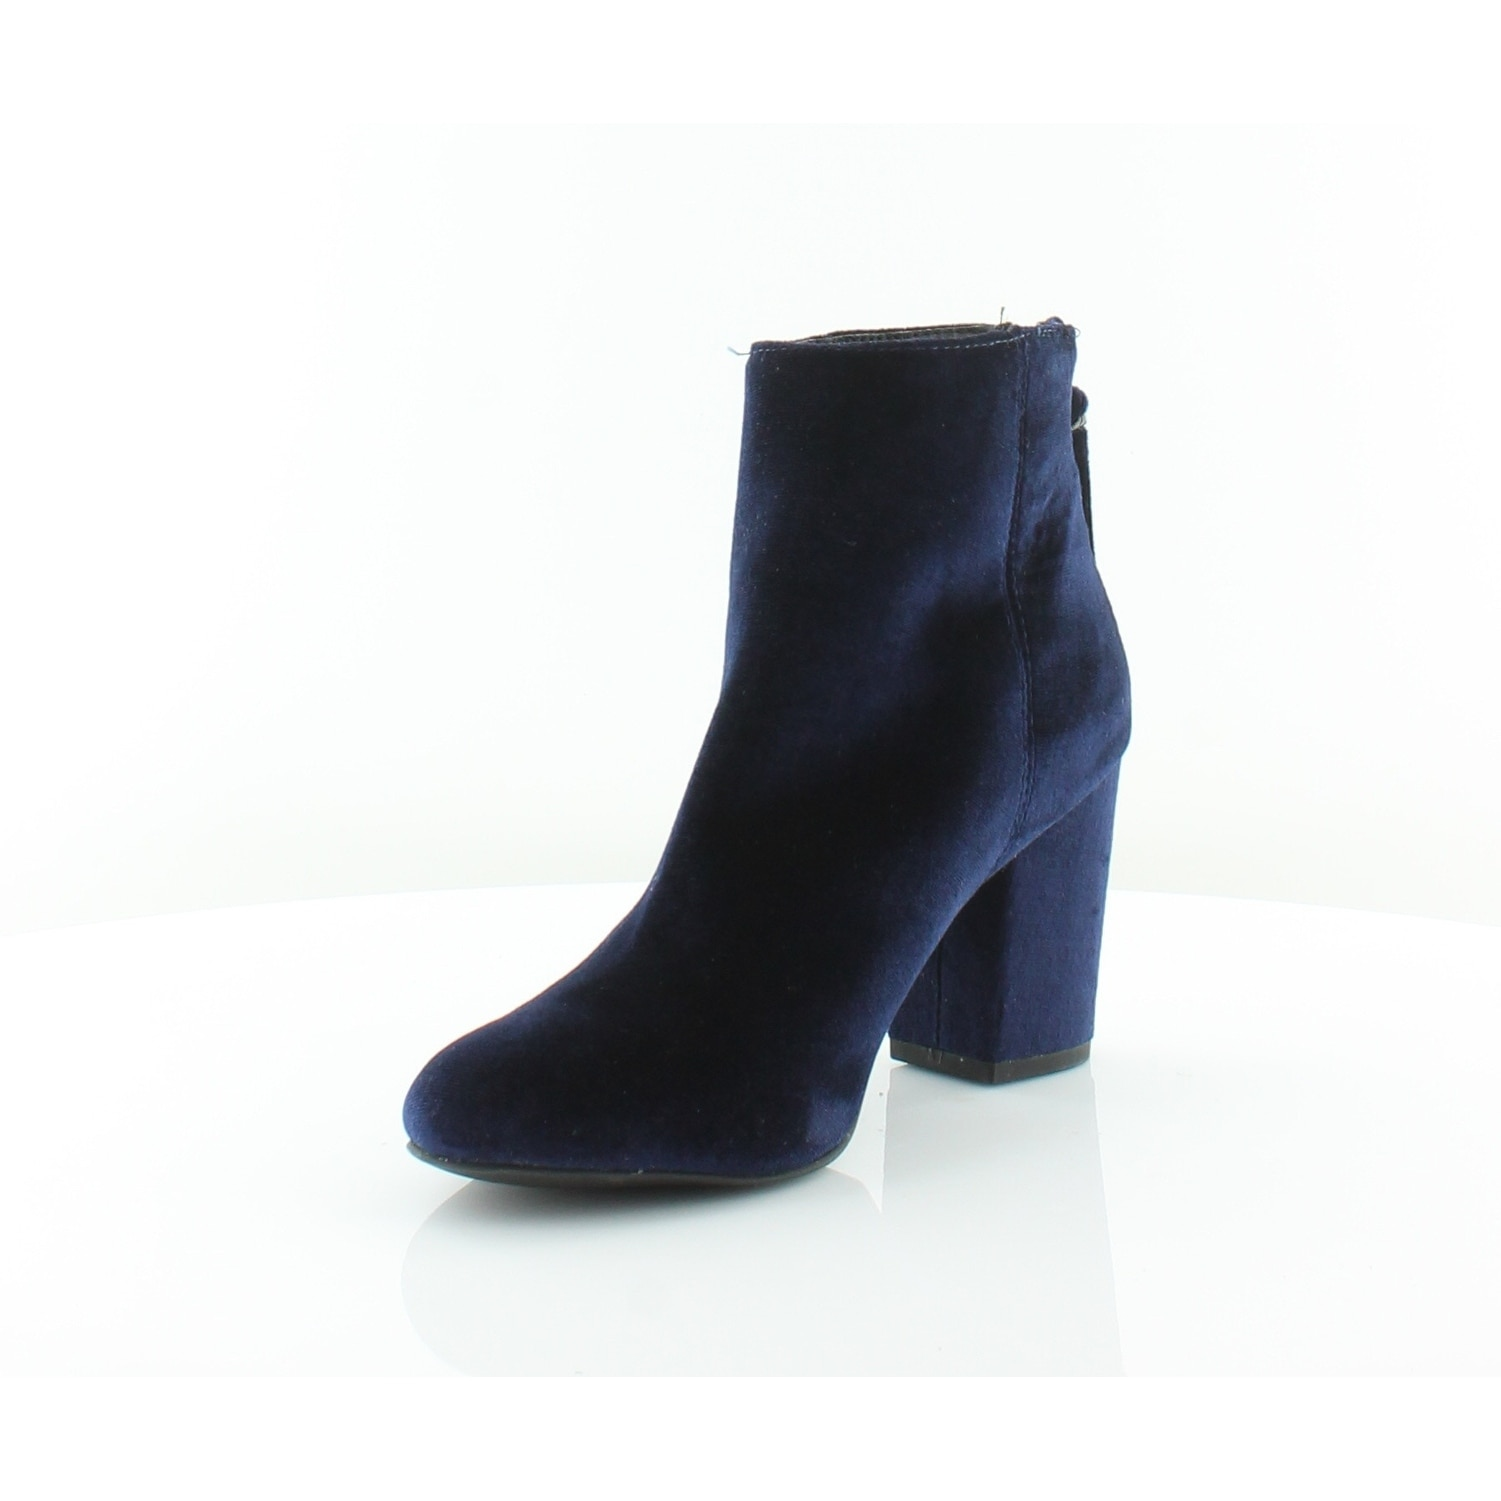 8fa11a2bcbc Shop Steve Madden Cynthia Women s Boots Navy - 5.5 - Free Shipping Today -  Overstock - 21554096